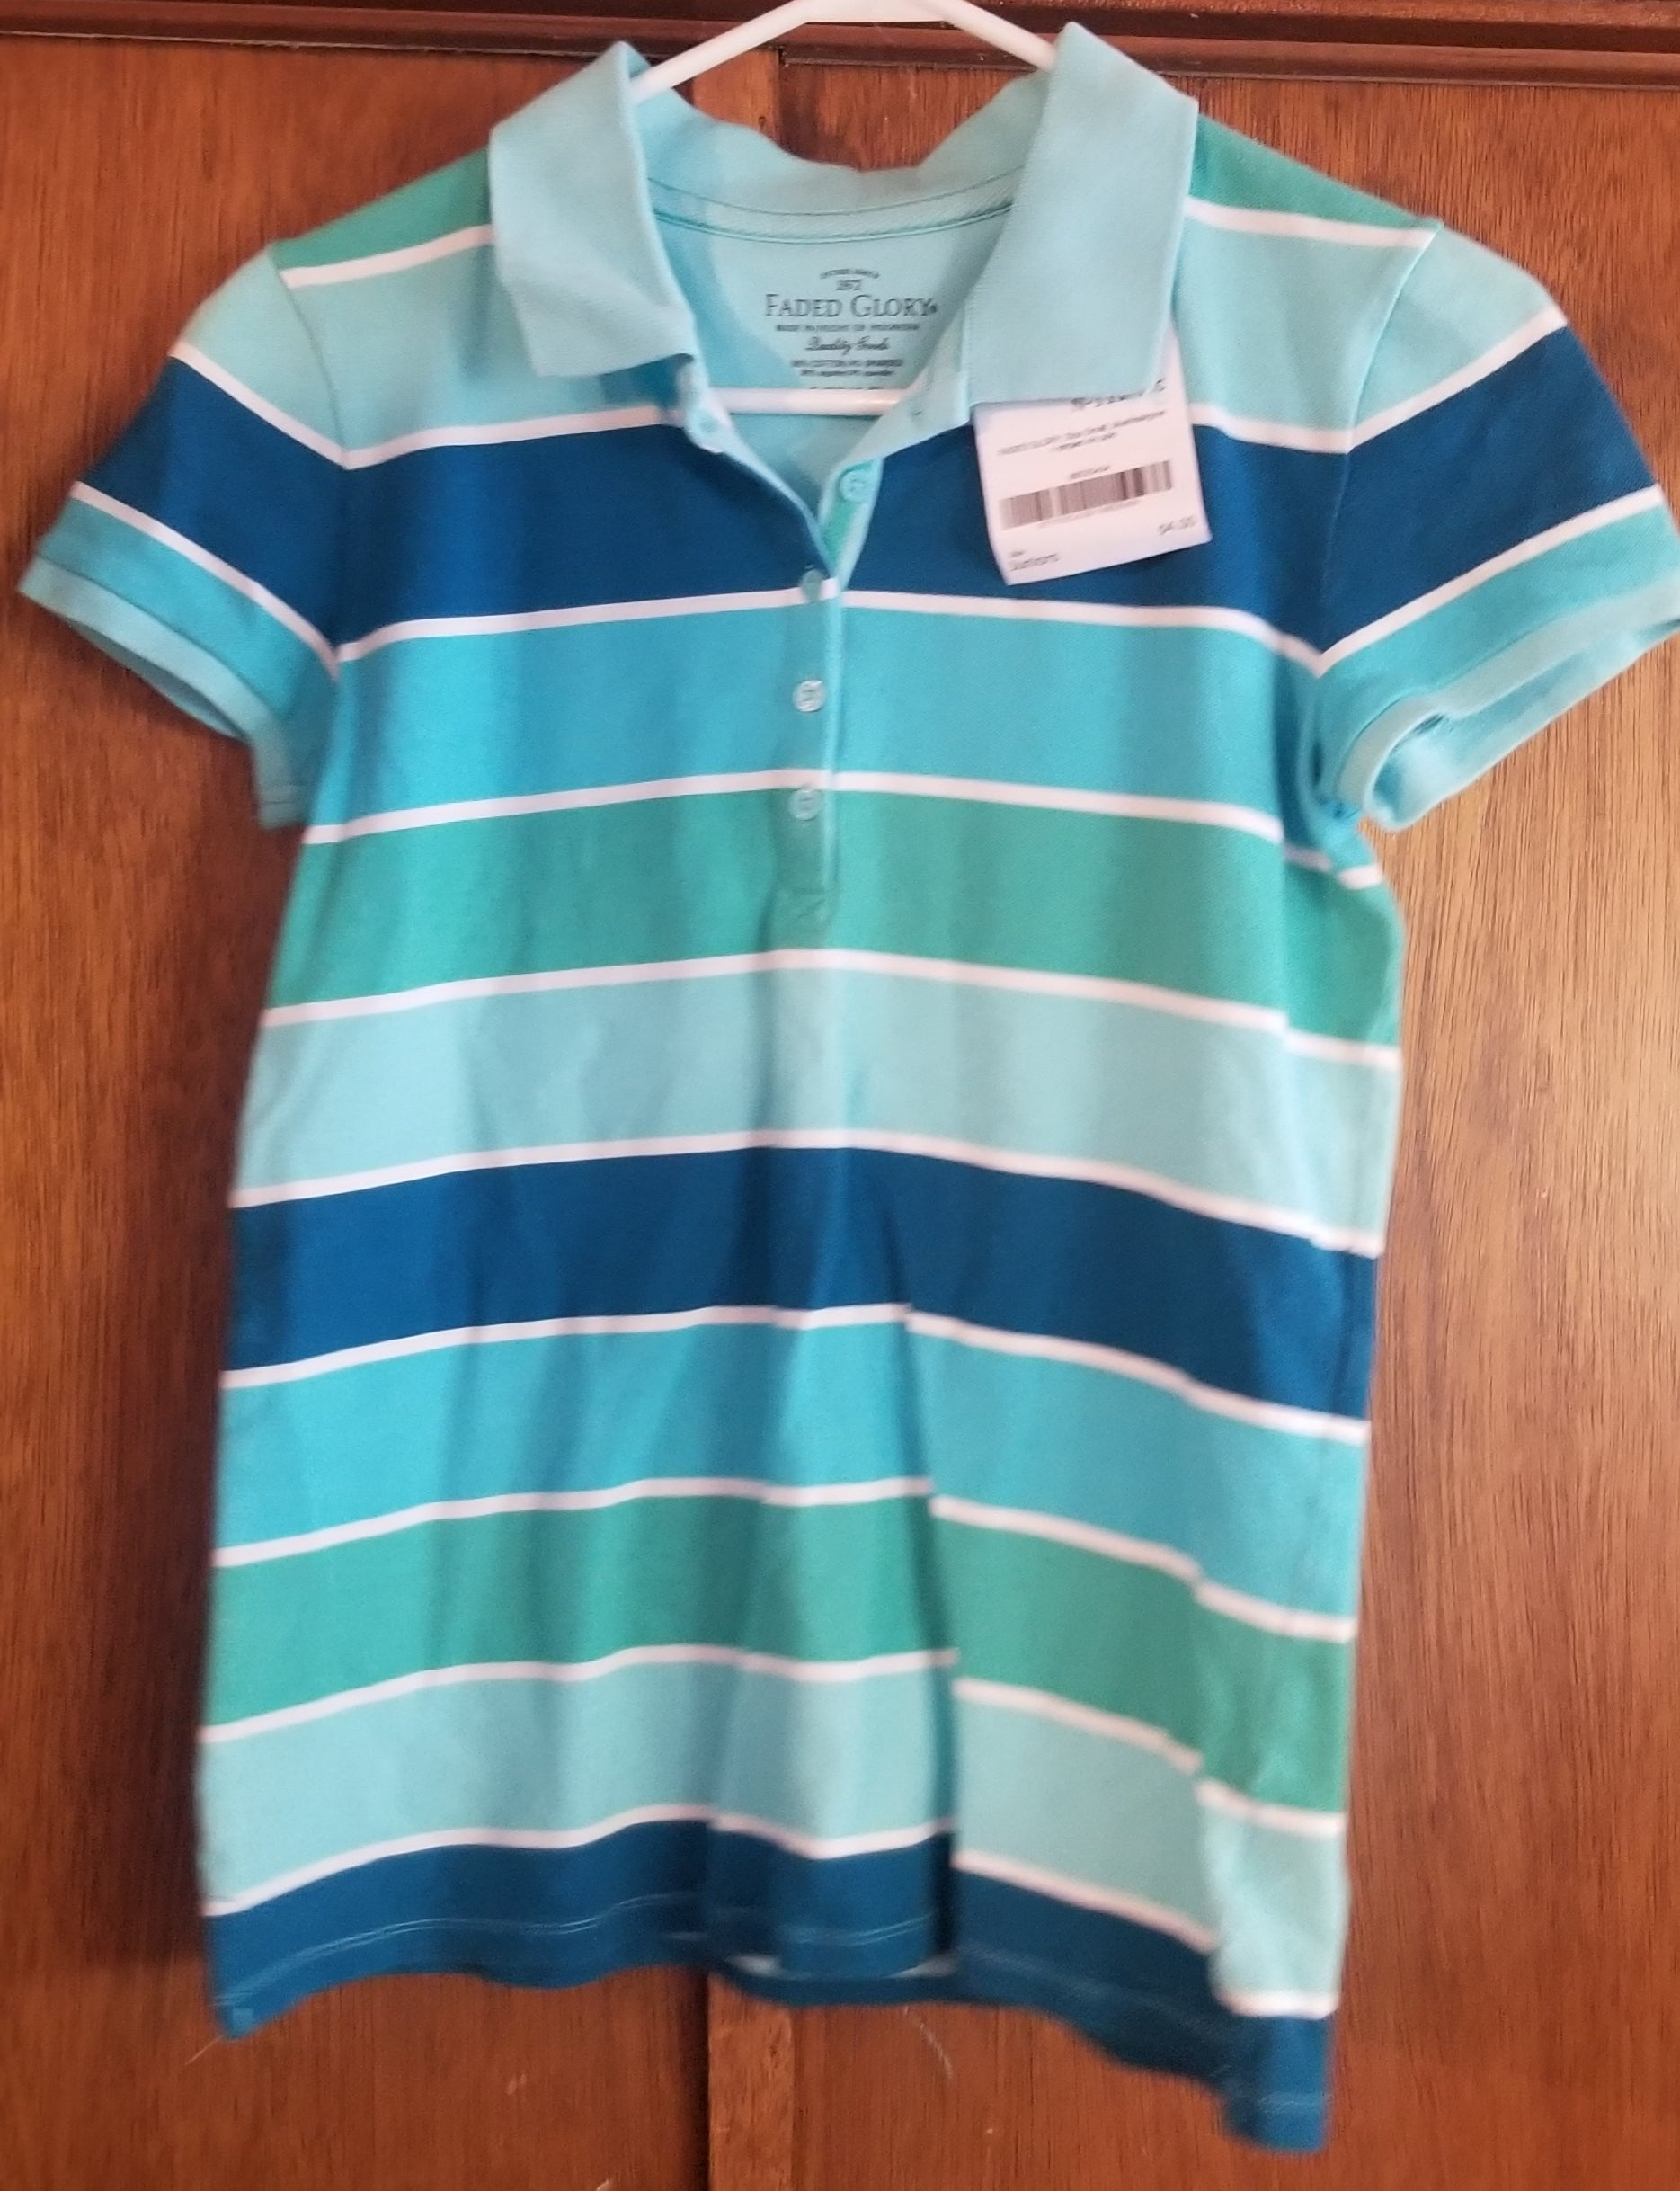 FADED GLORY SZ SMALL juniors blue/teal/green striped short sleeve polo